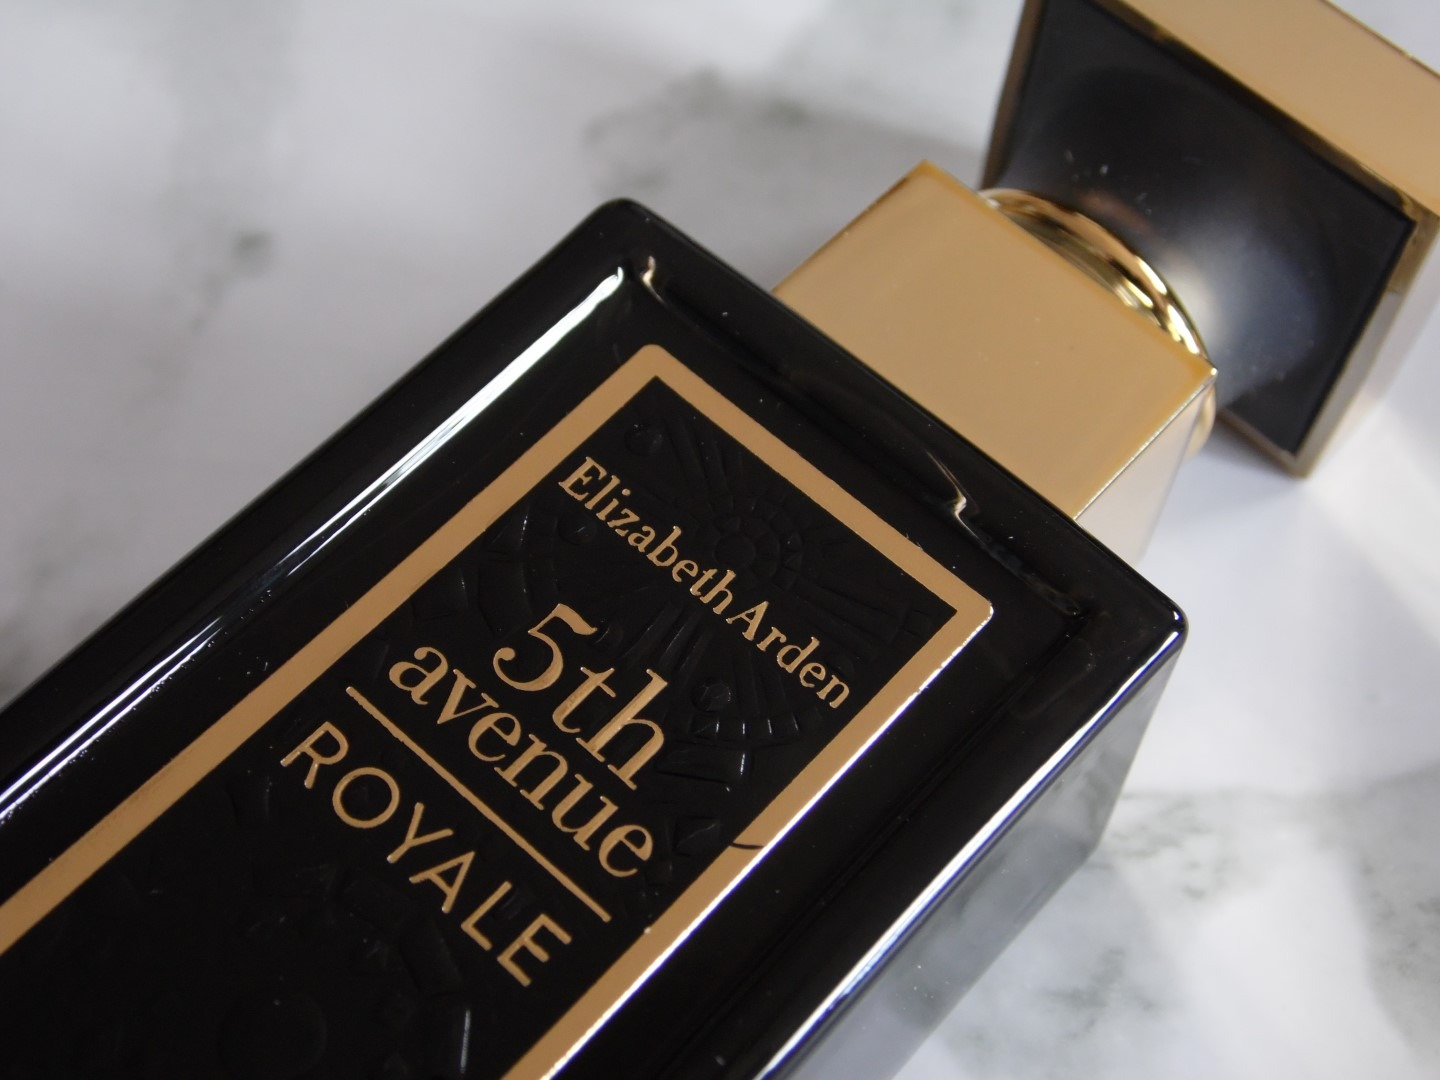 Elizabeth Arden 5th Avenue Royale - By Megan Kelly